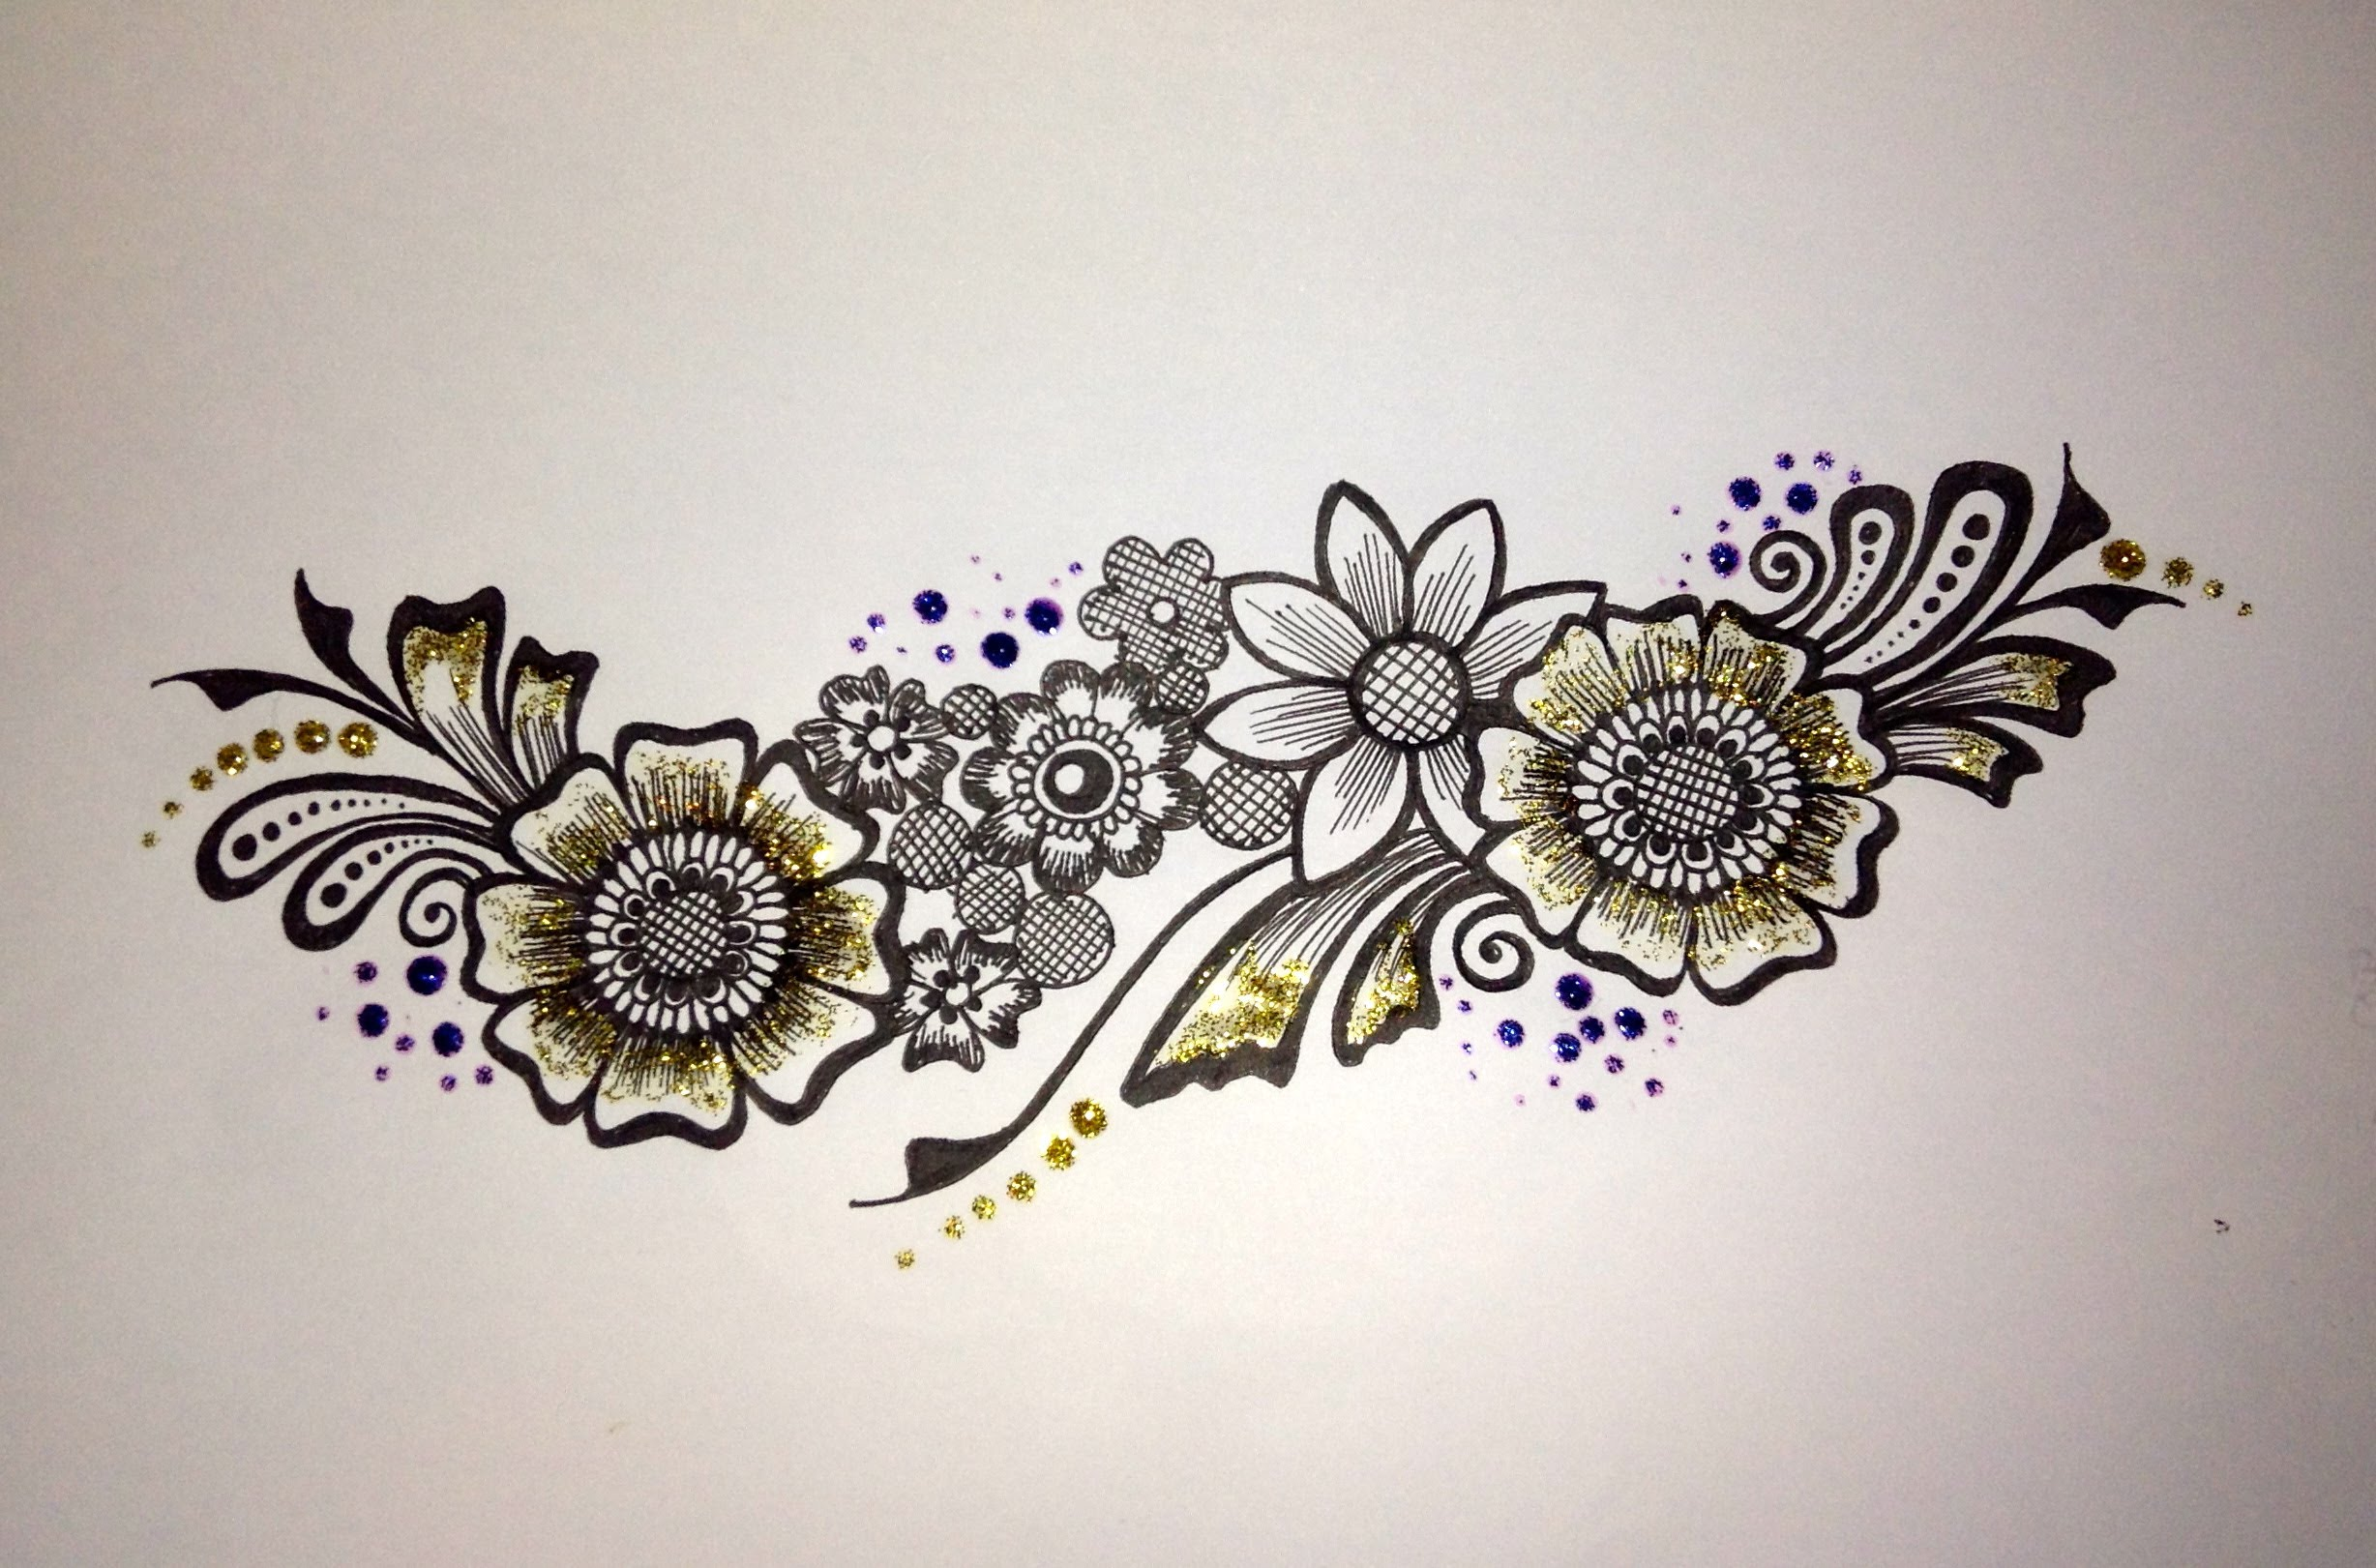 Drawn mehndi sketch Flower Mehndi YouTube drawing: strip